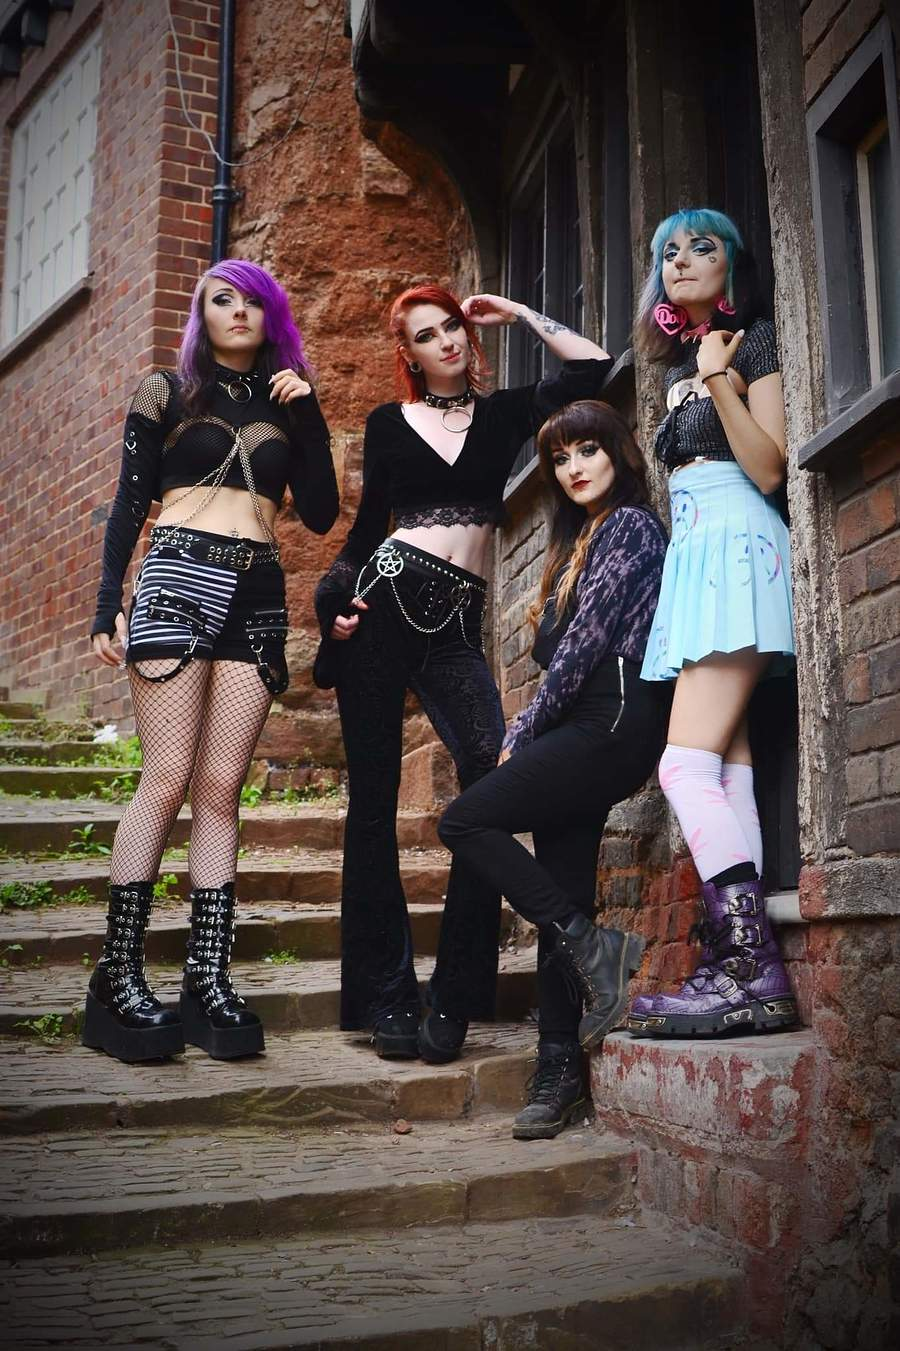 Photography by moonscape, Models Jade Alexandra Model, Models Samantha9, Models Slam Petal, Models Vampire kiss / Uploaded 4th September 2019 @ 08:11 PM